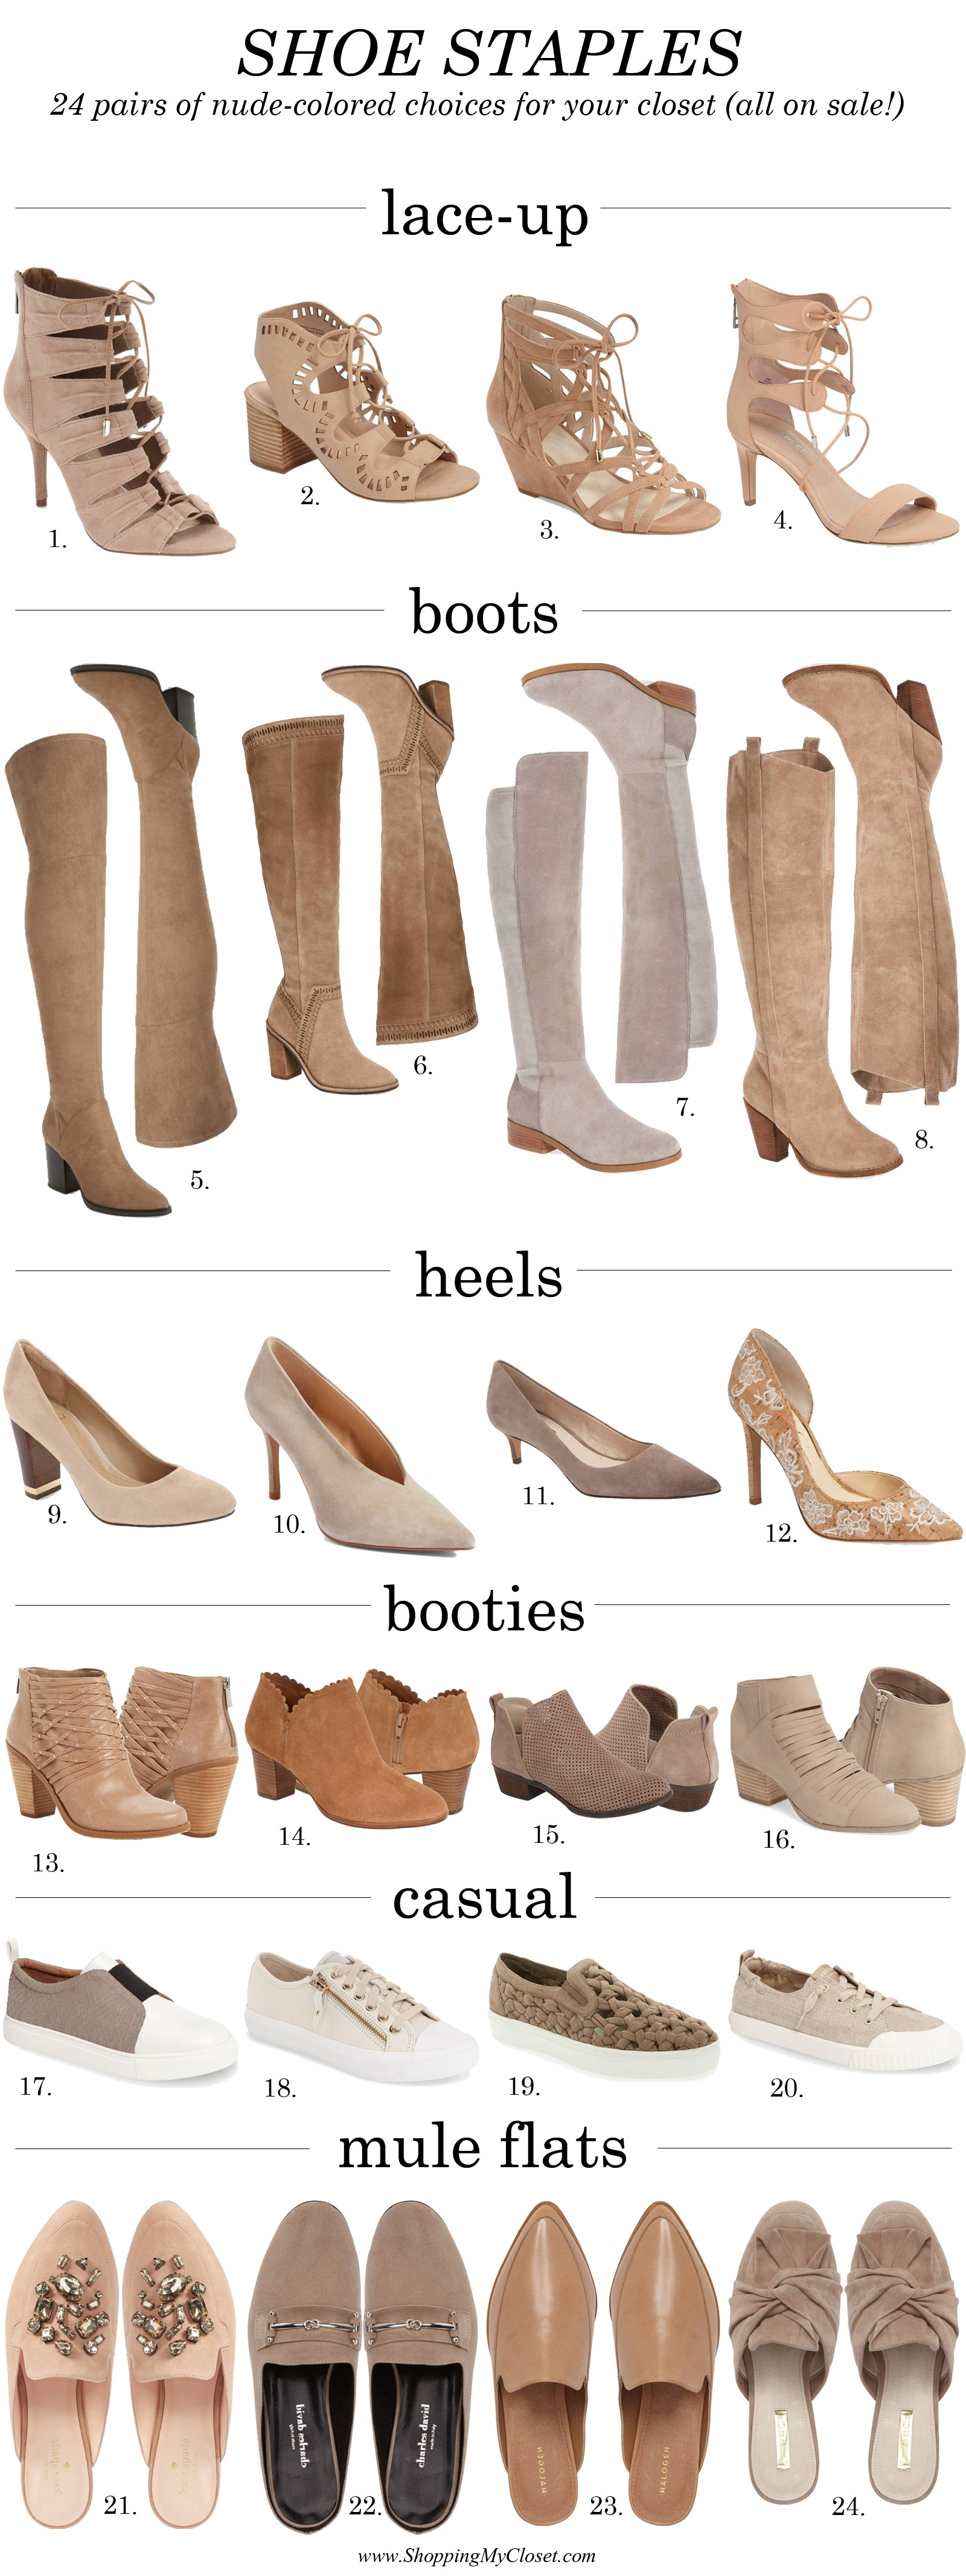 Shoe staples on sale | see all the picks at www.shoppingmycloset.com